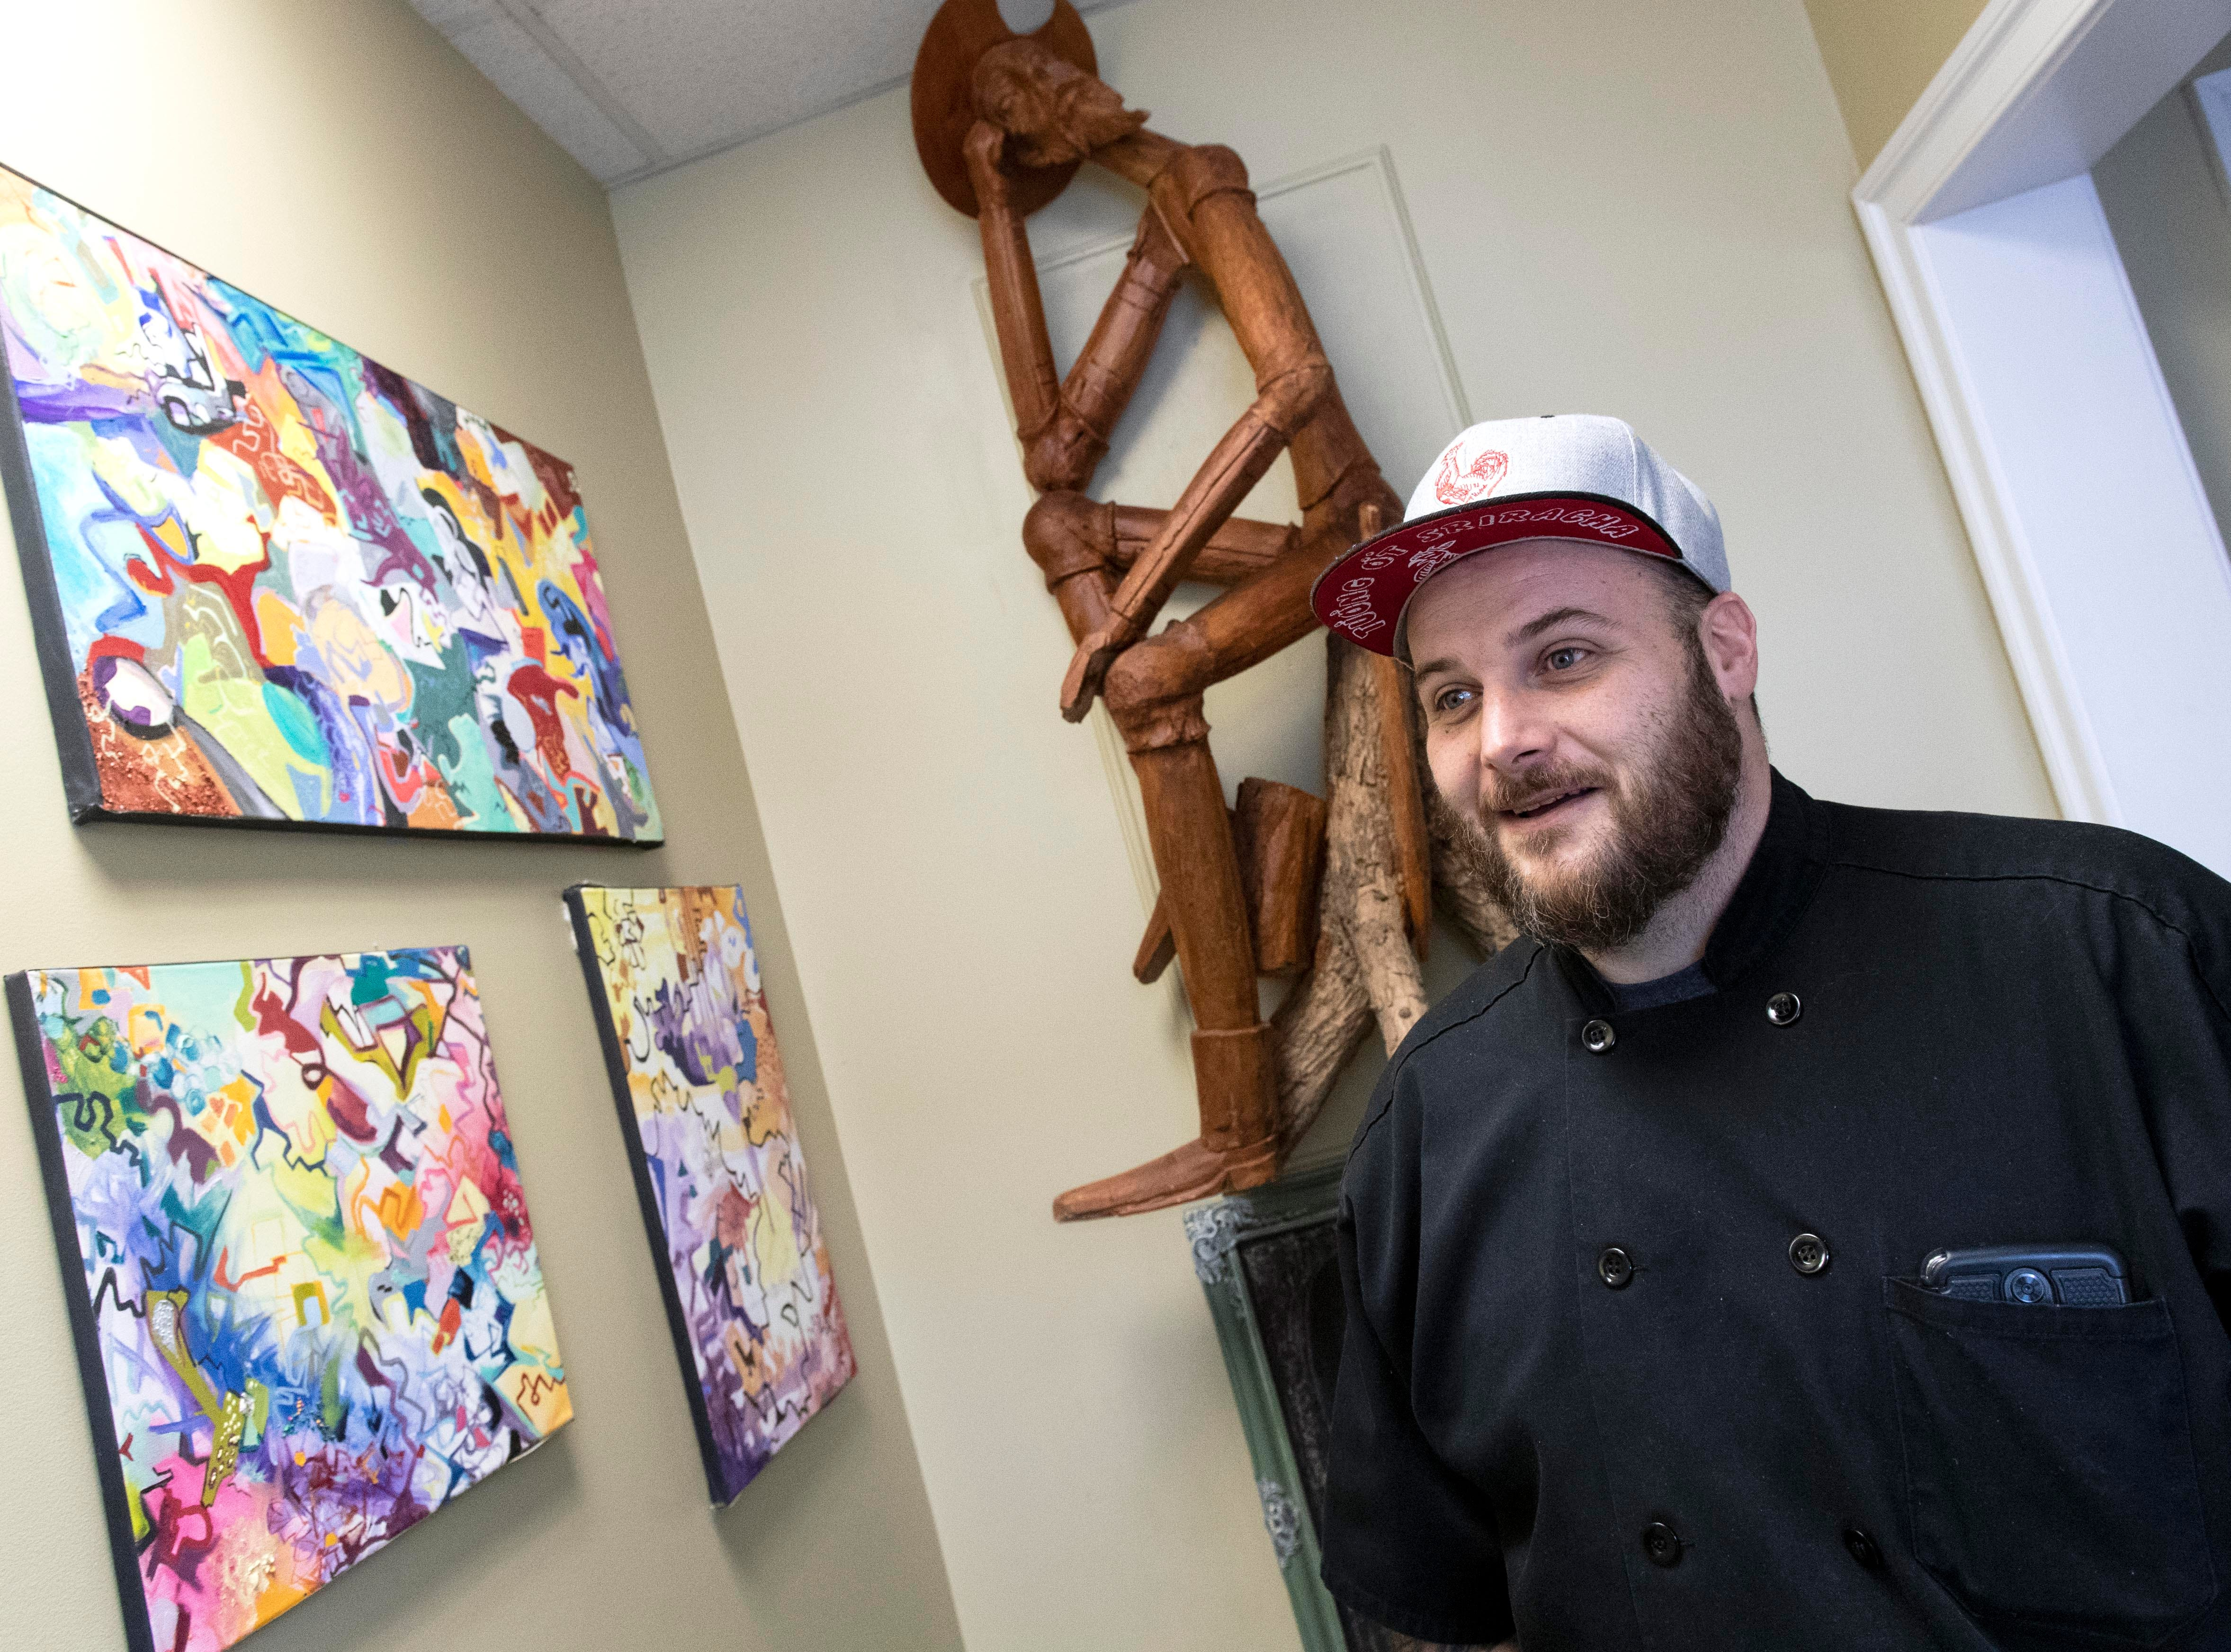 Michael Monigle, owner and executive chef at HomeGrown Catering in the Frey Mansion, talks about the artwork while standing in the front entrance of the restaurant, Thursday, Jan. 3, 2019. The restaurant is set to open on Jan. 10, with an American-style menu with a French twist. It's also BYOB.